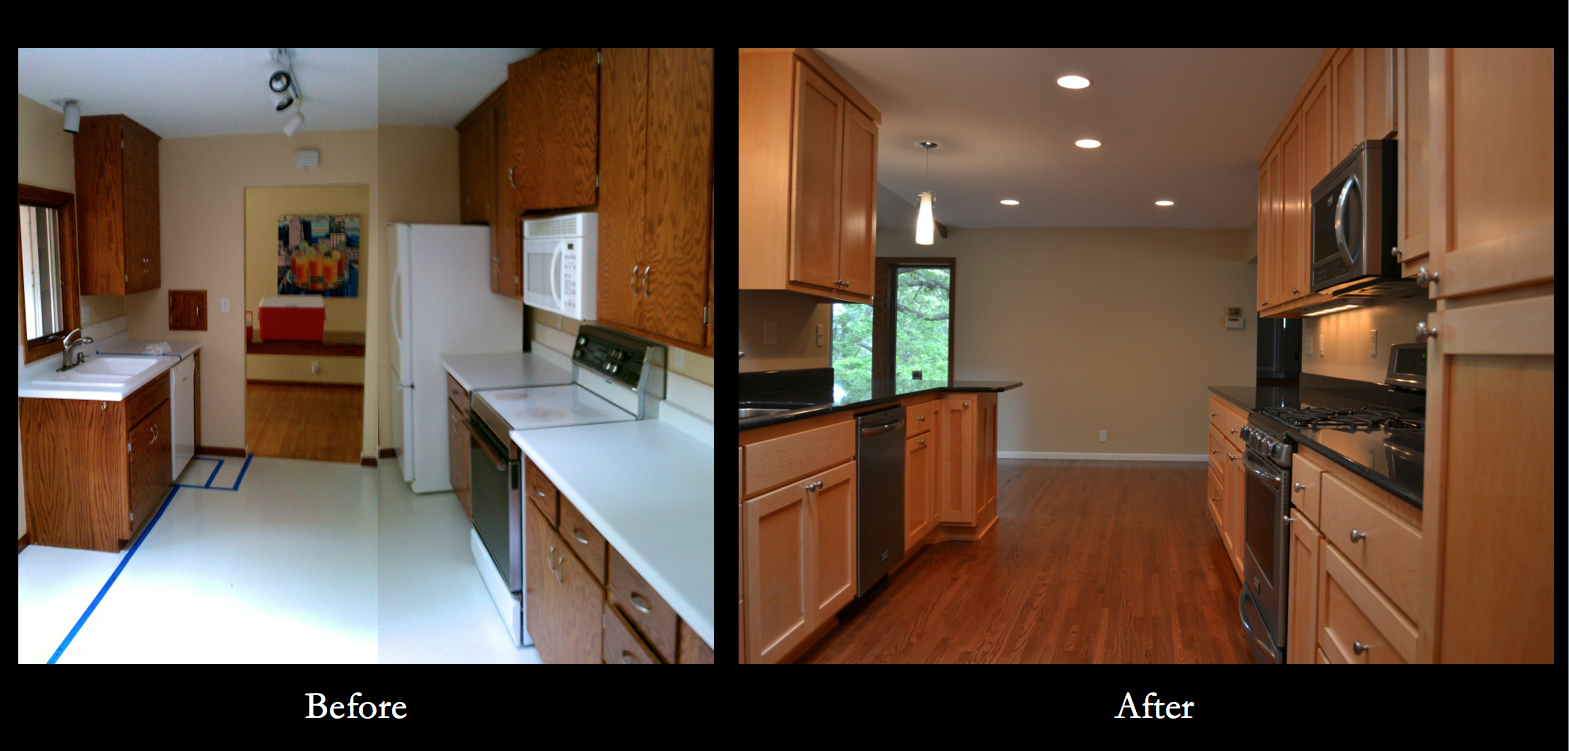 Home renovation before and after nicer on the eyes and for Mobile home kitchen ideas